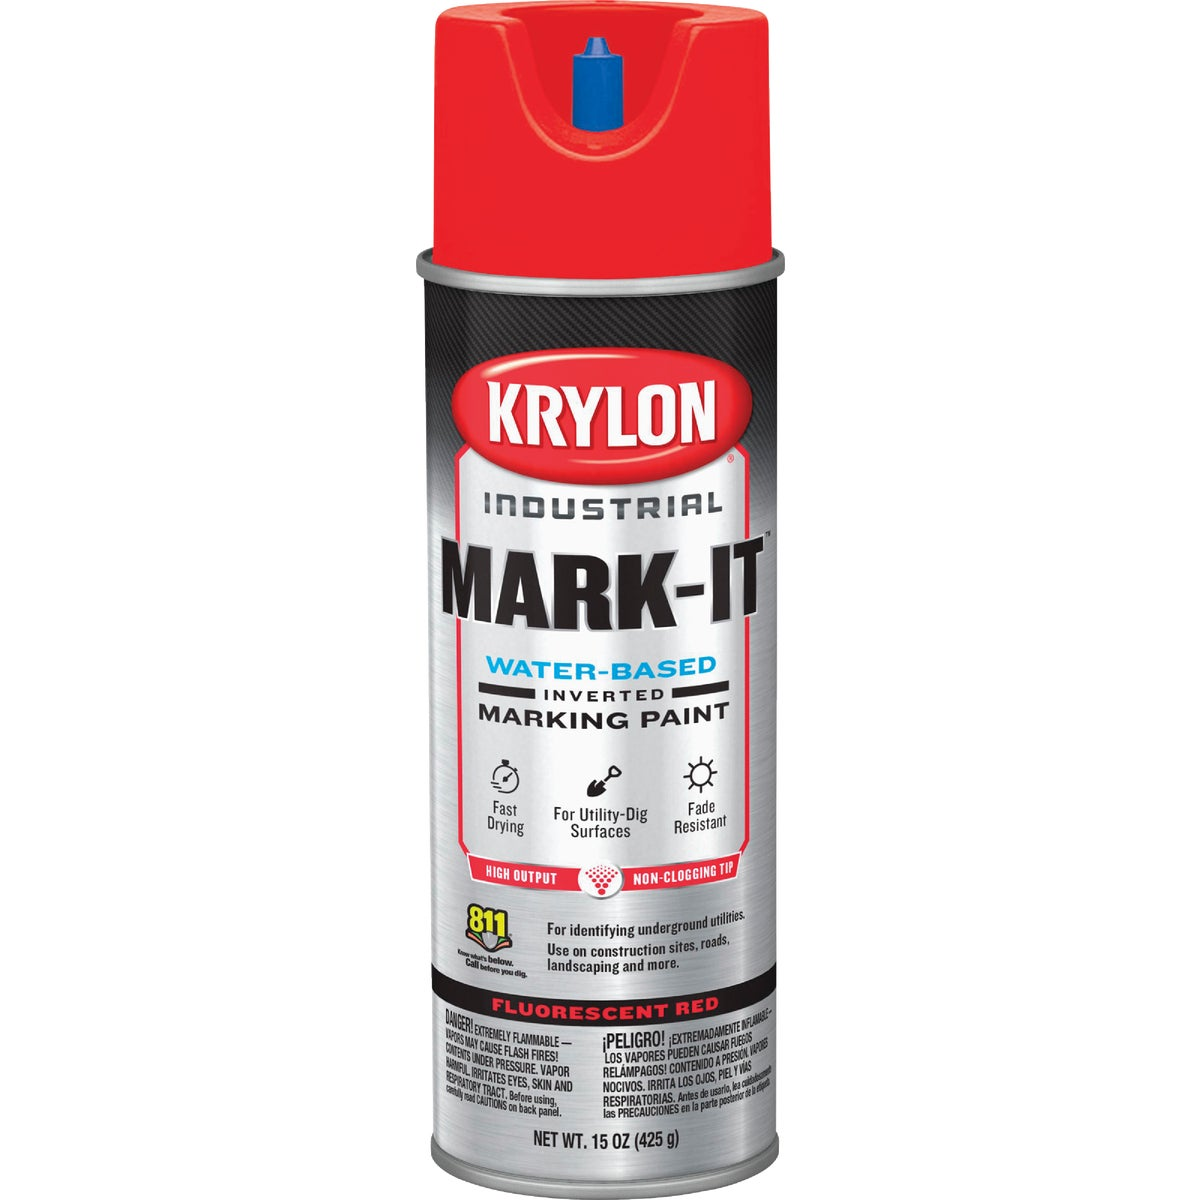 APWA RED MARKING PAINT - K07313000 by Krylon/consumer Div